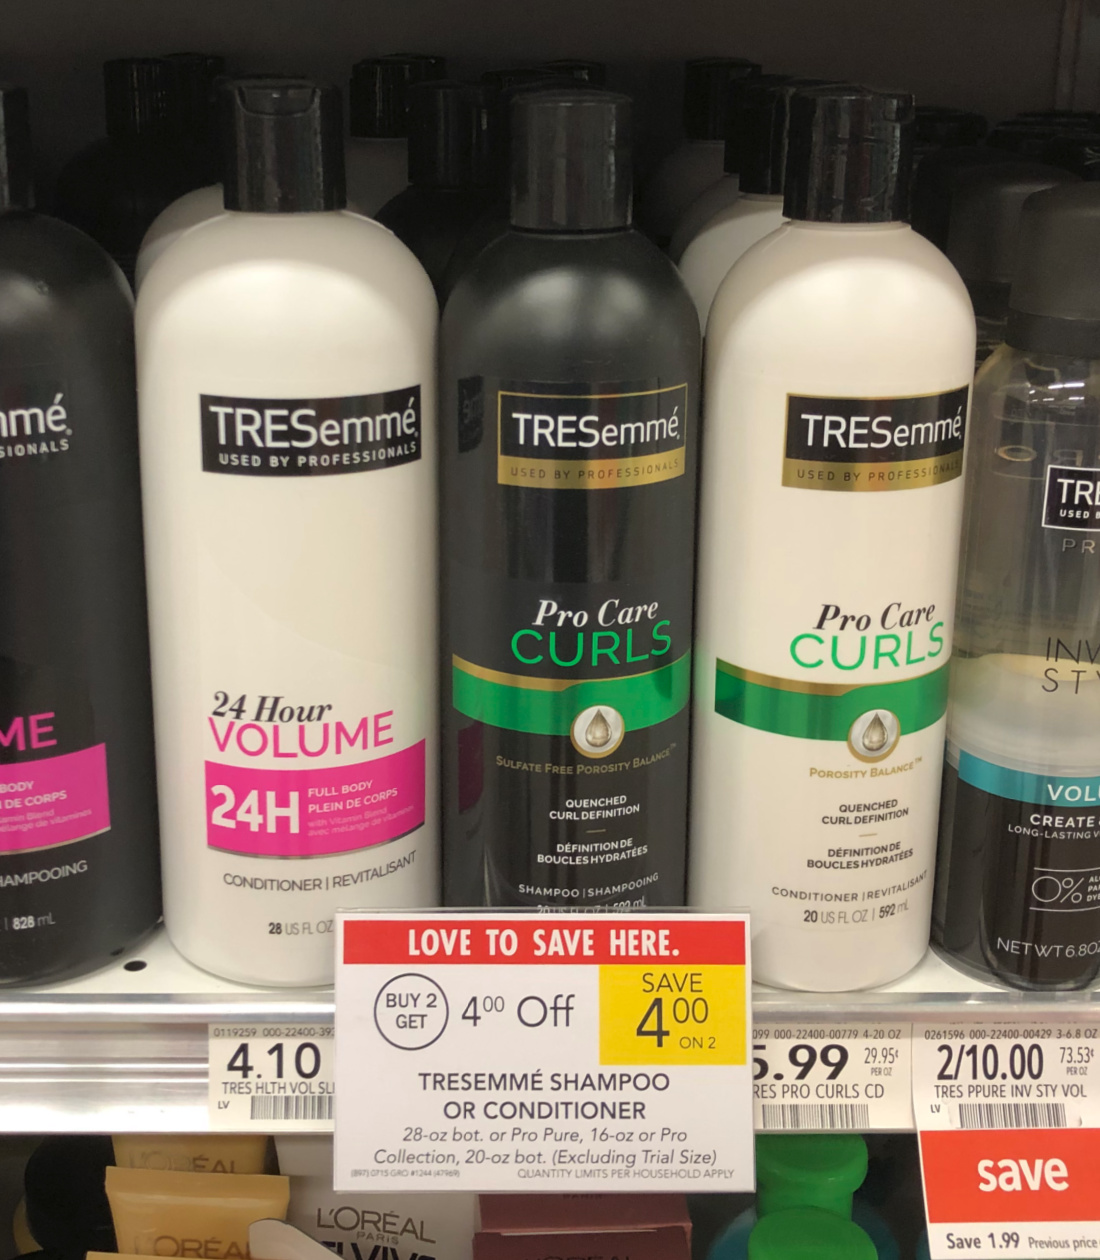 TRESemme Pro Collection As Low As $1.49 At Publix on I Heart Publix